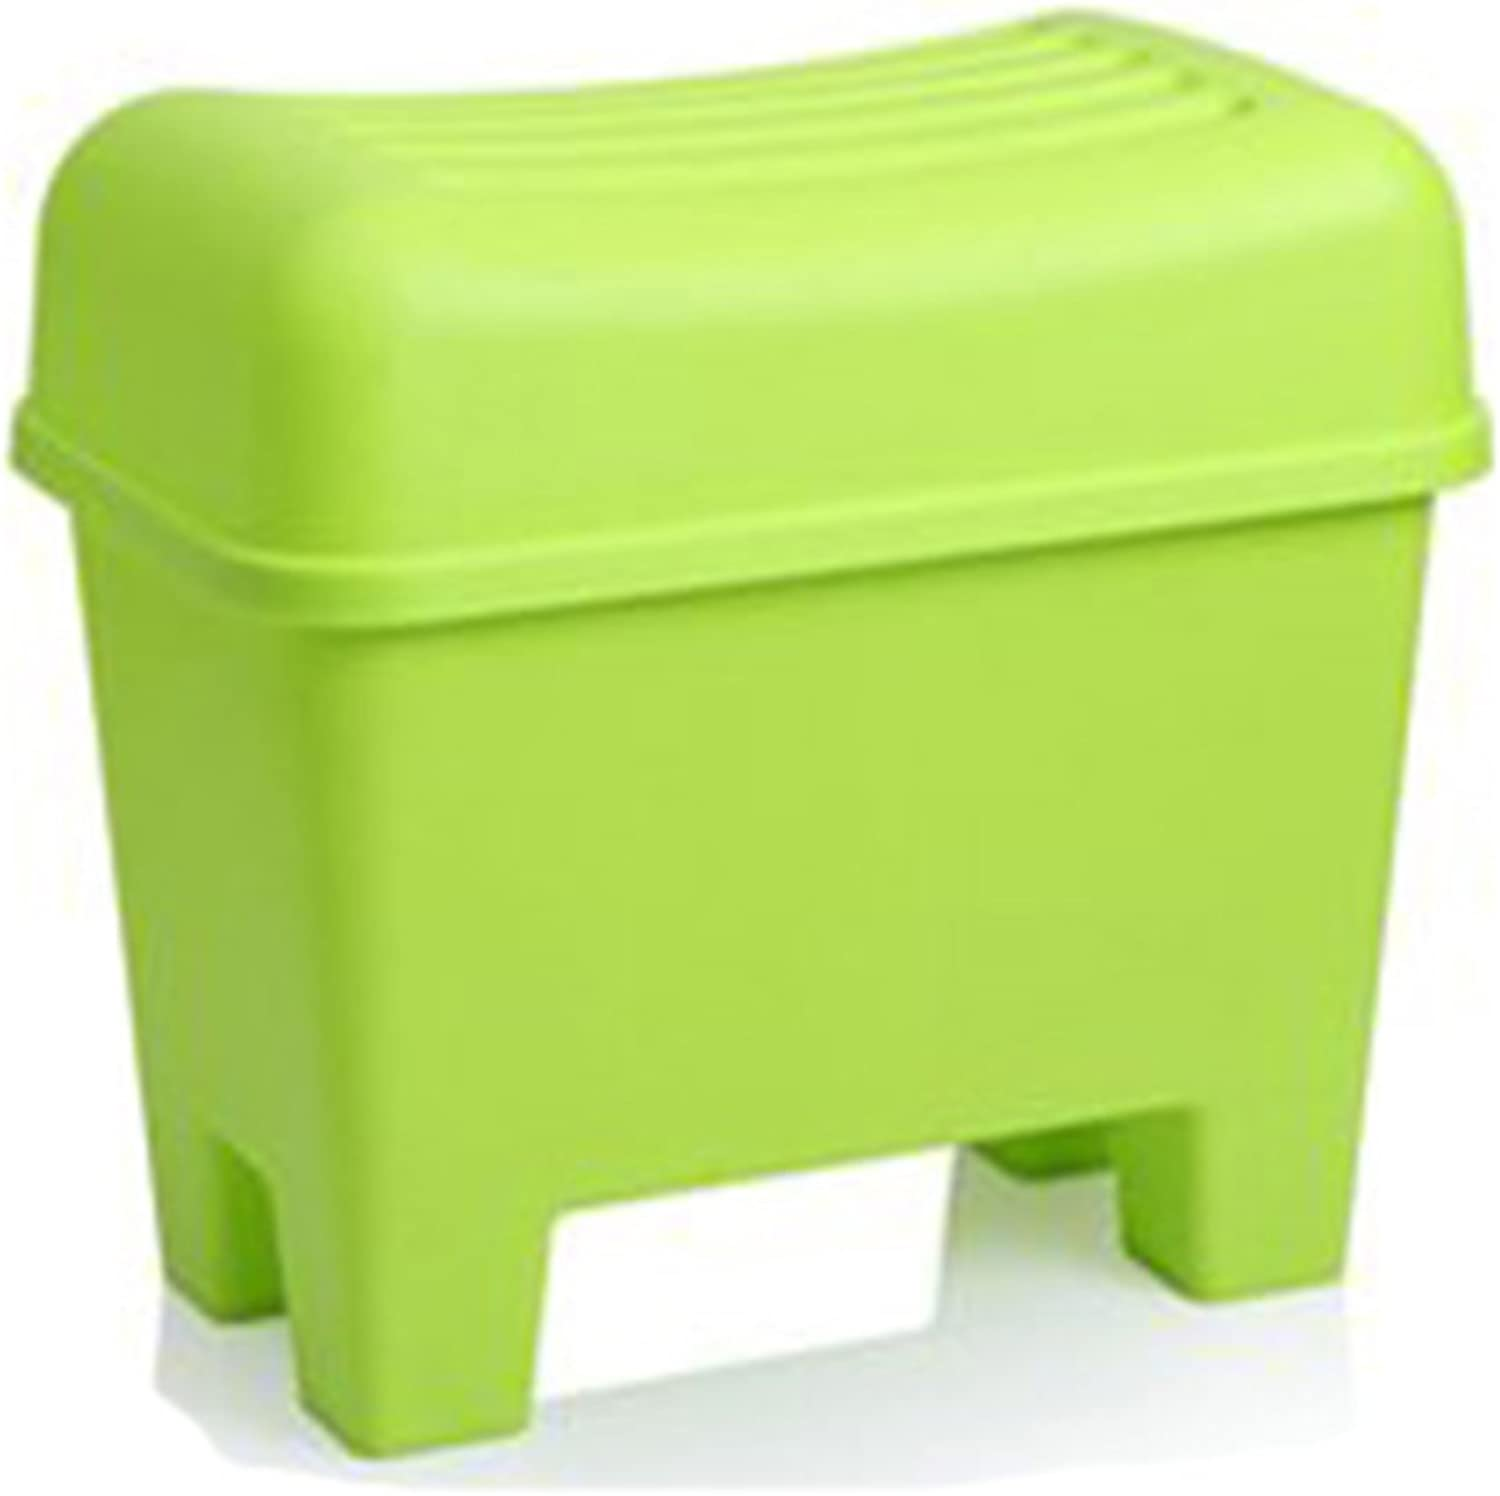 DINGDING Stools Plastic creative storage stool waterproof bathroom nonslip stool (color   Green)